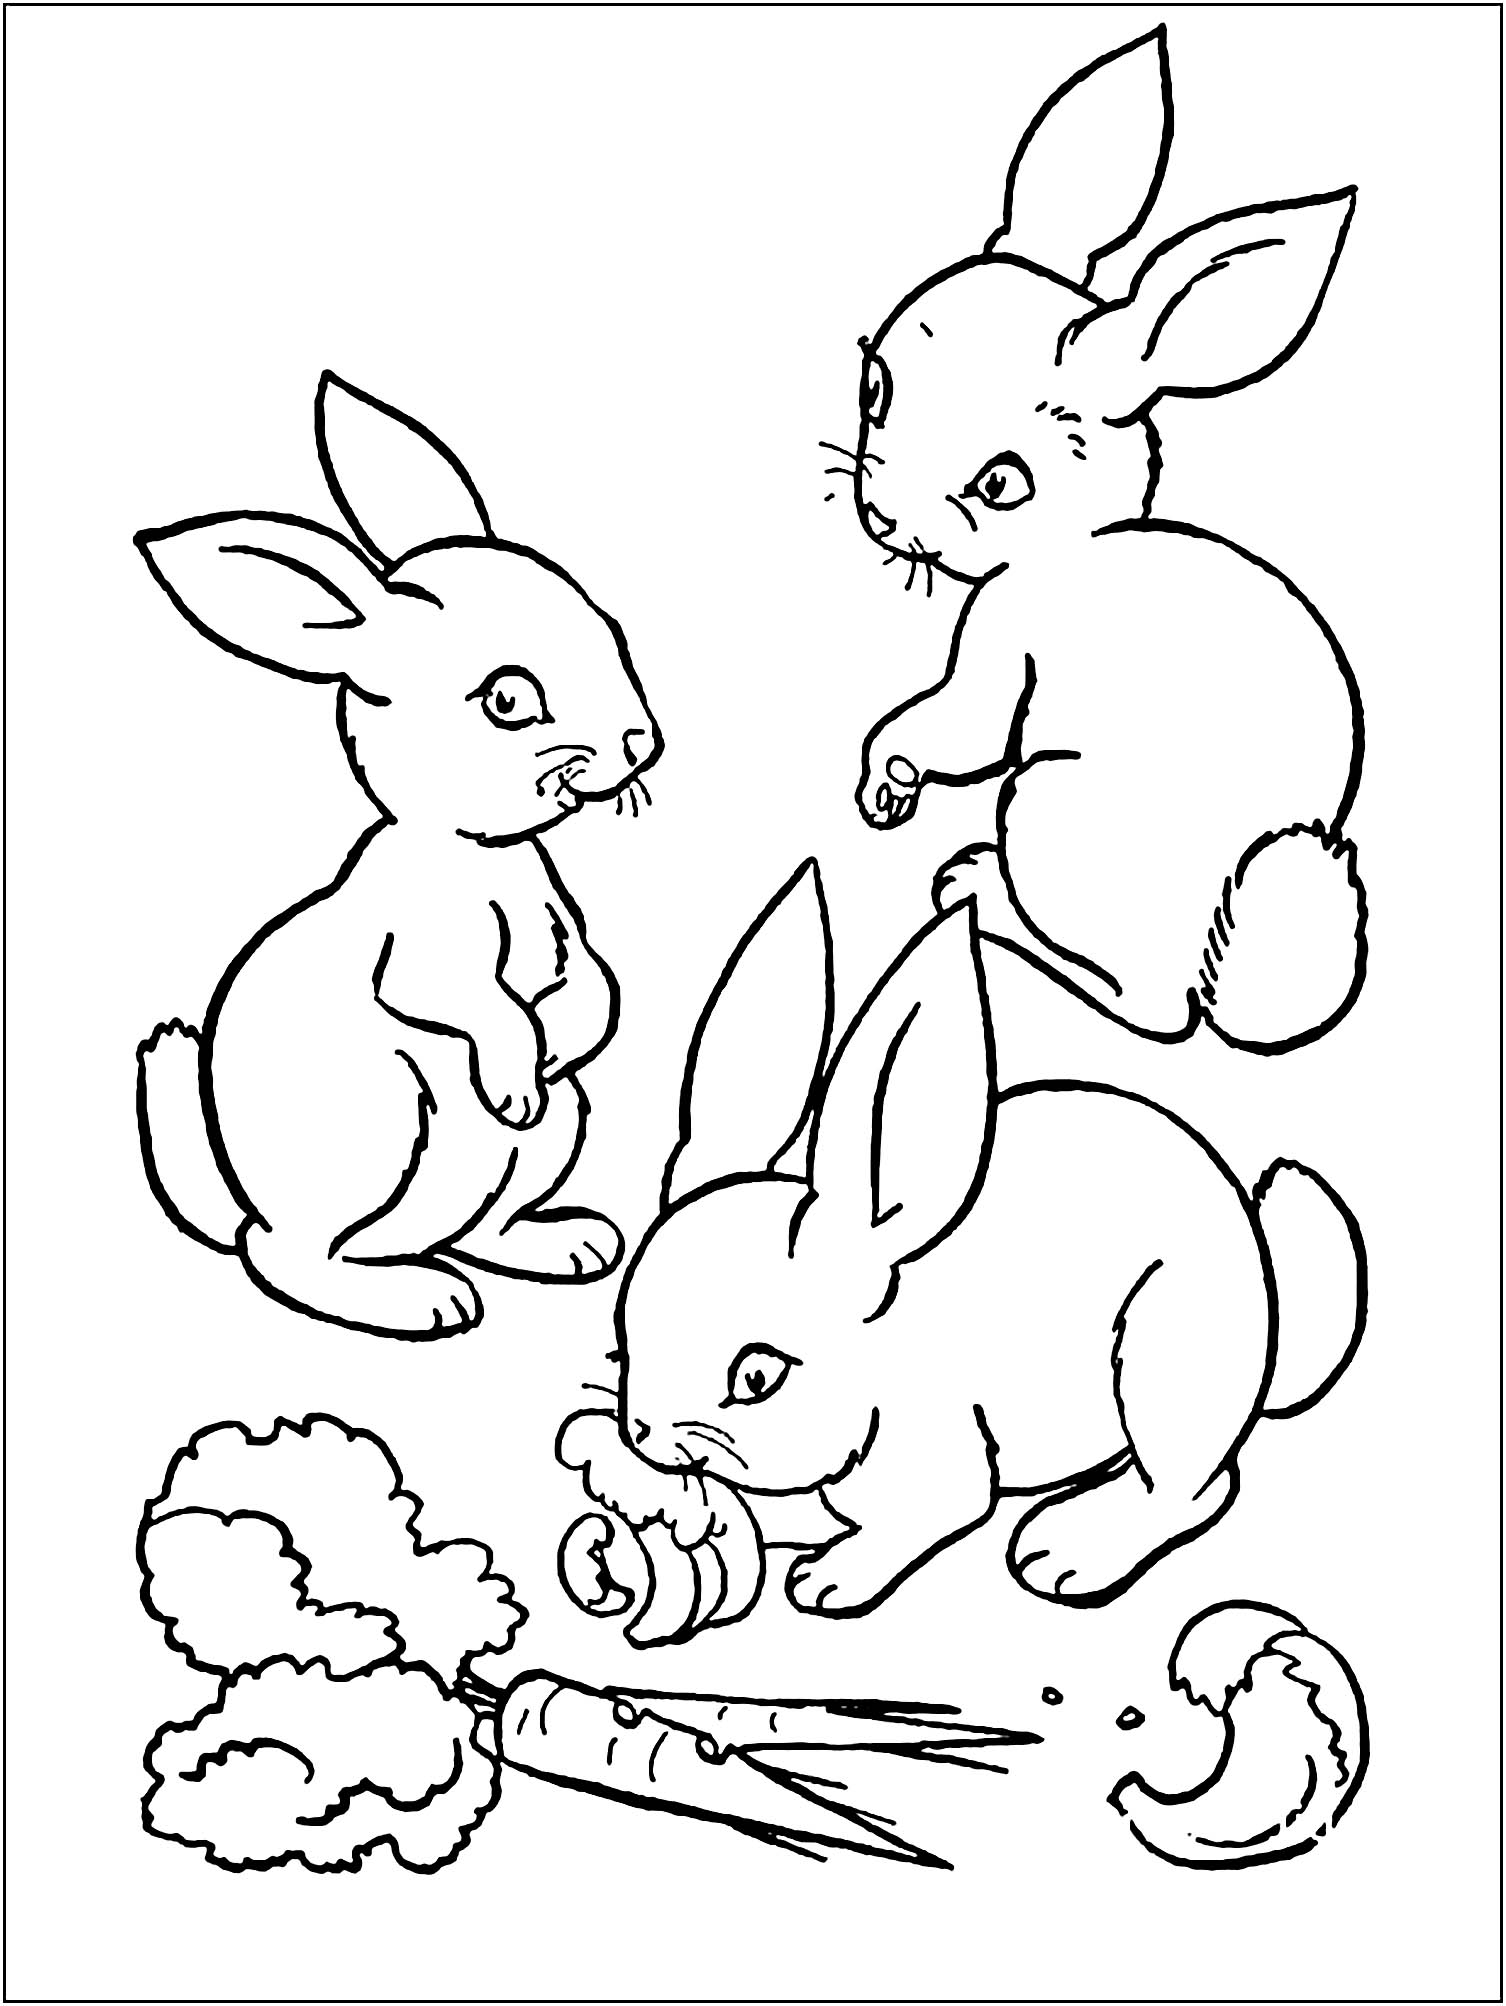 rabbit coloring page coloring pages of a rabbit printable free coloring sheets coloring page rabbit